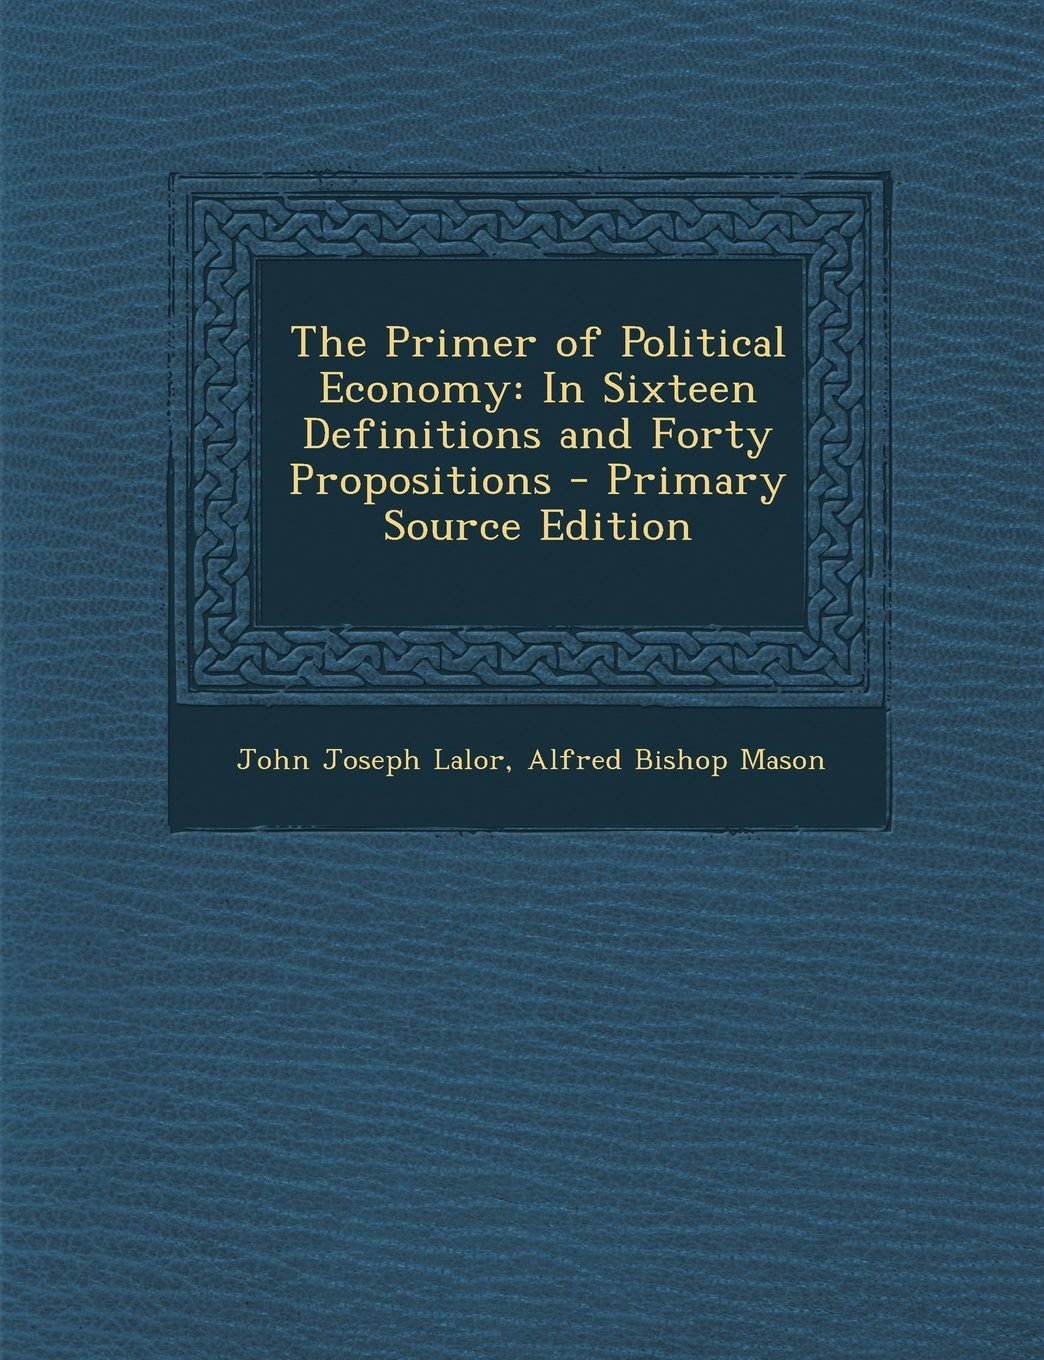 Primer of Political Economy: In Sixteen Definitions and Forty Propositions pdf